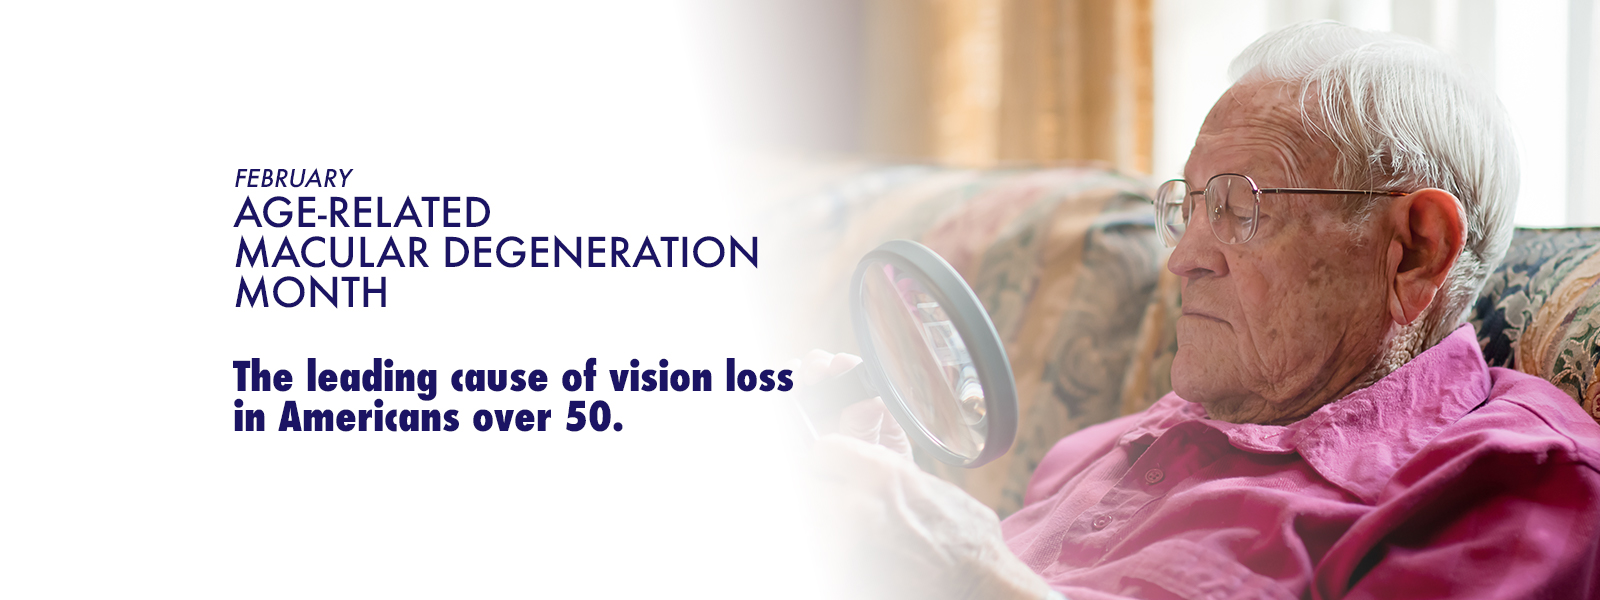 Age-Related Macular Degeneration Month